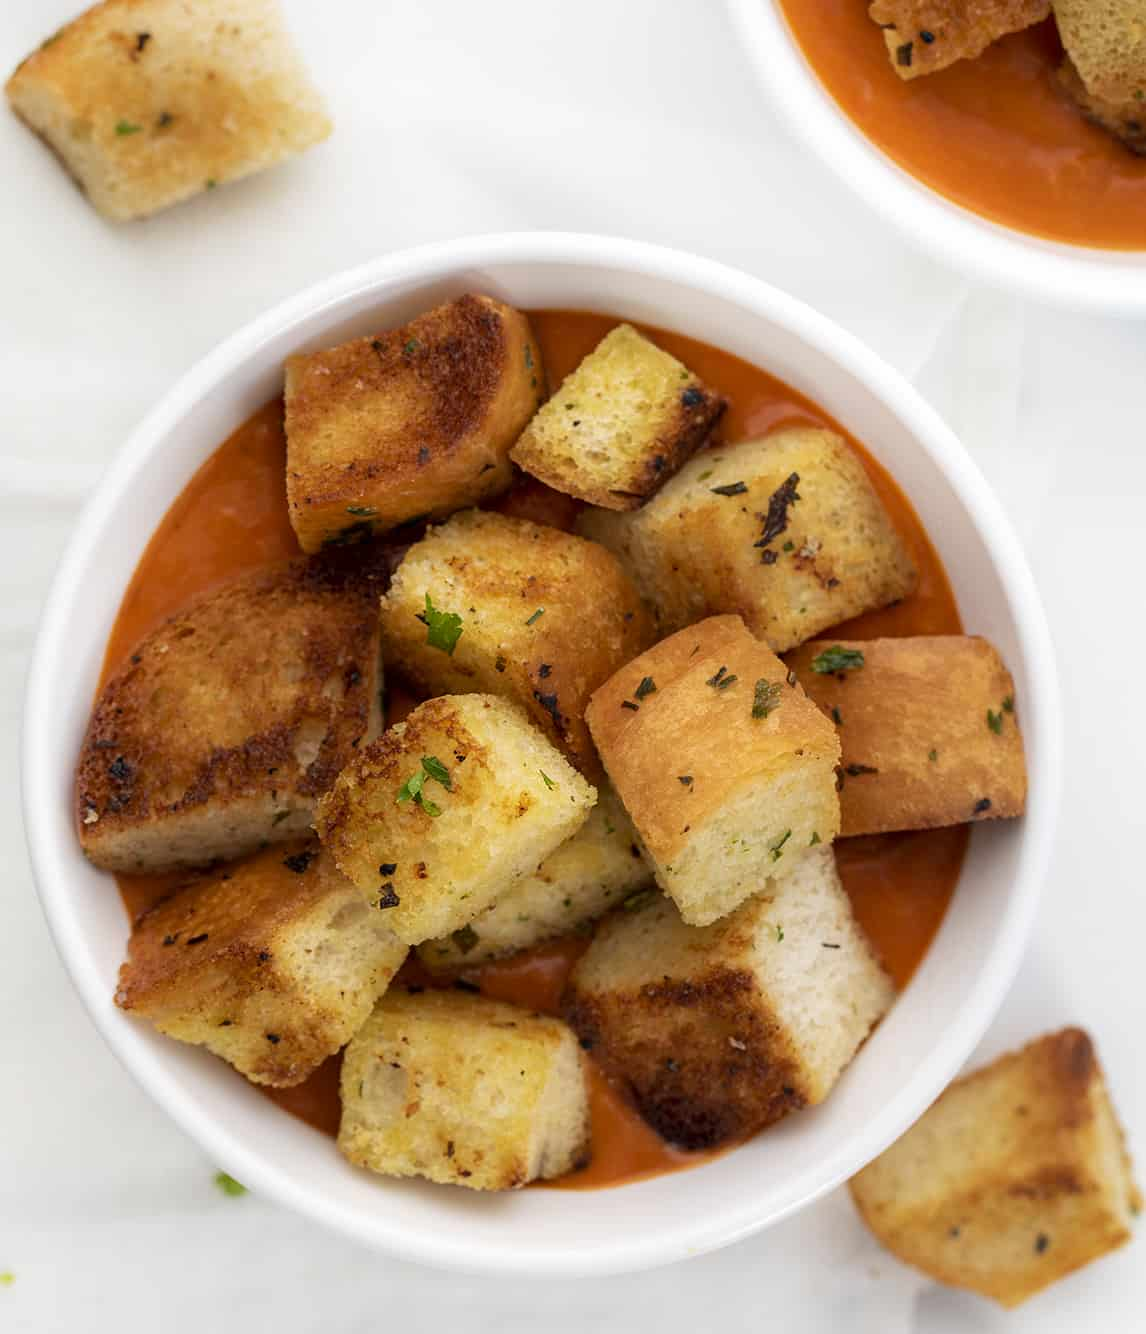 Bowl of Tomato Soup with Homemade Croutons